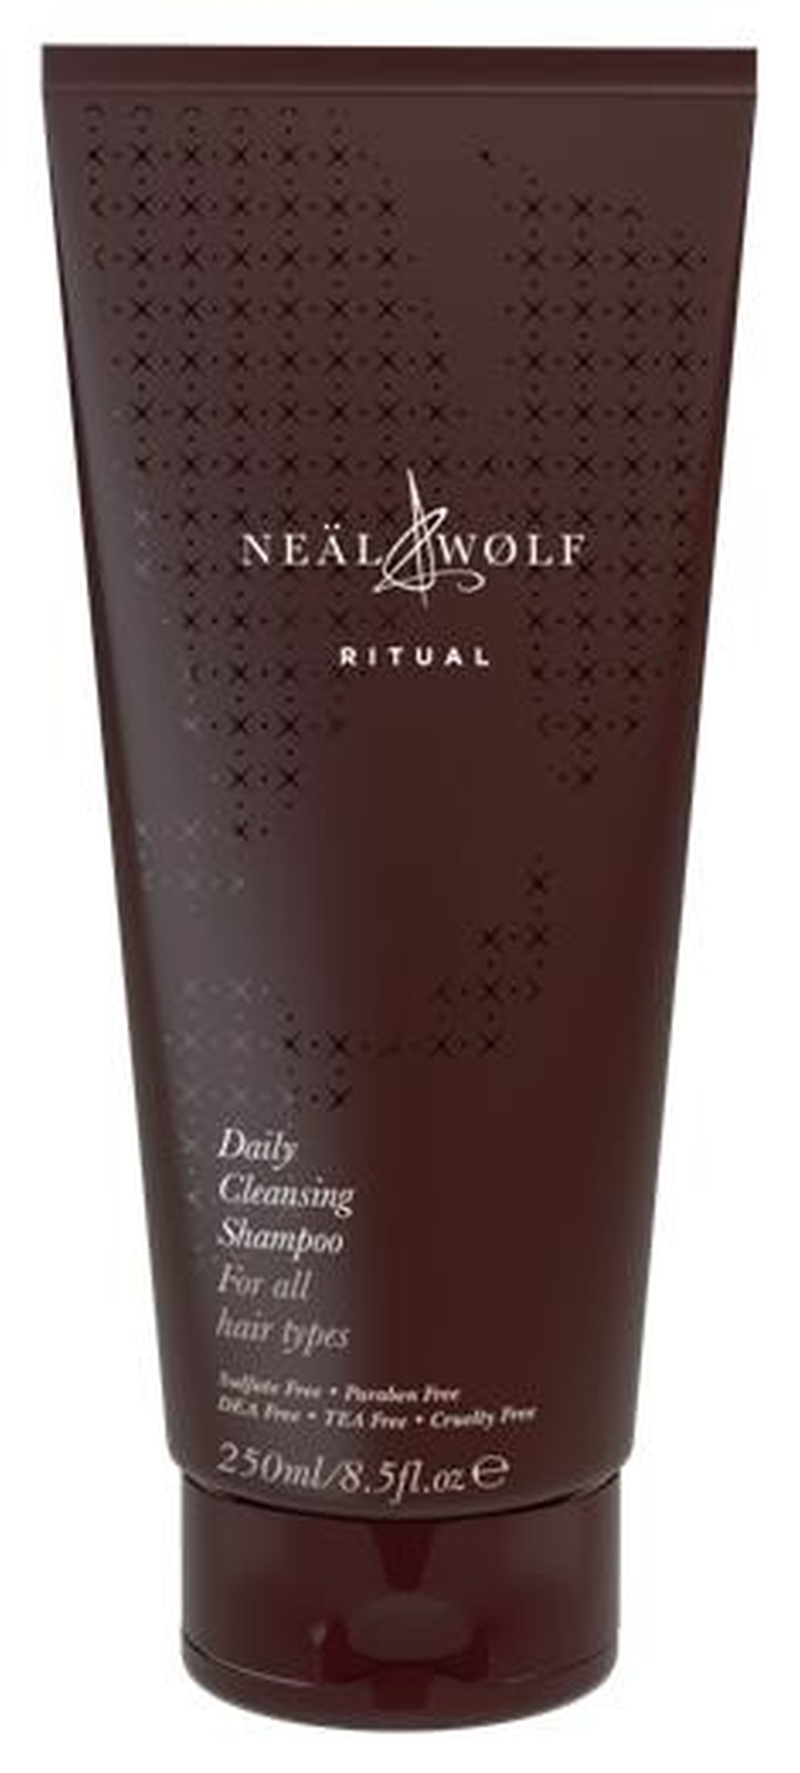 Neal and Wolf Ritual Daily Cleansing Shampoo 250ml